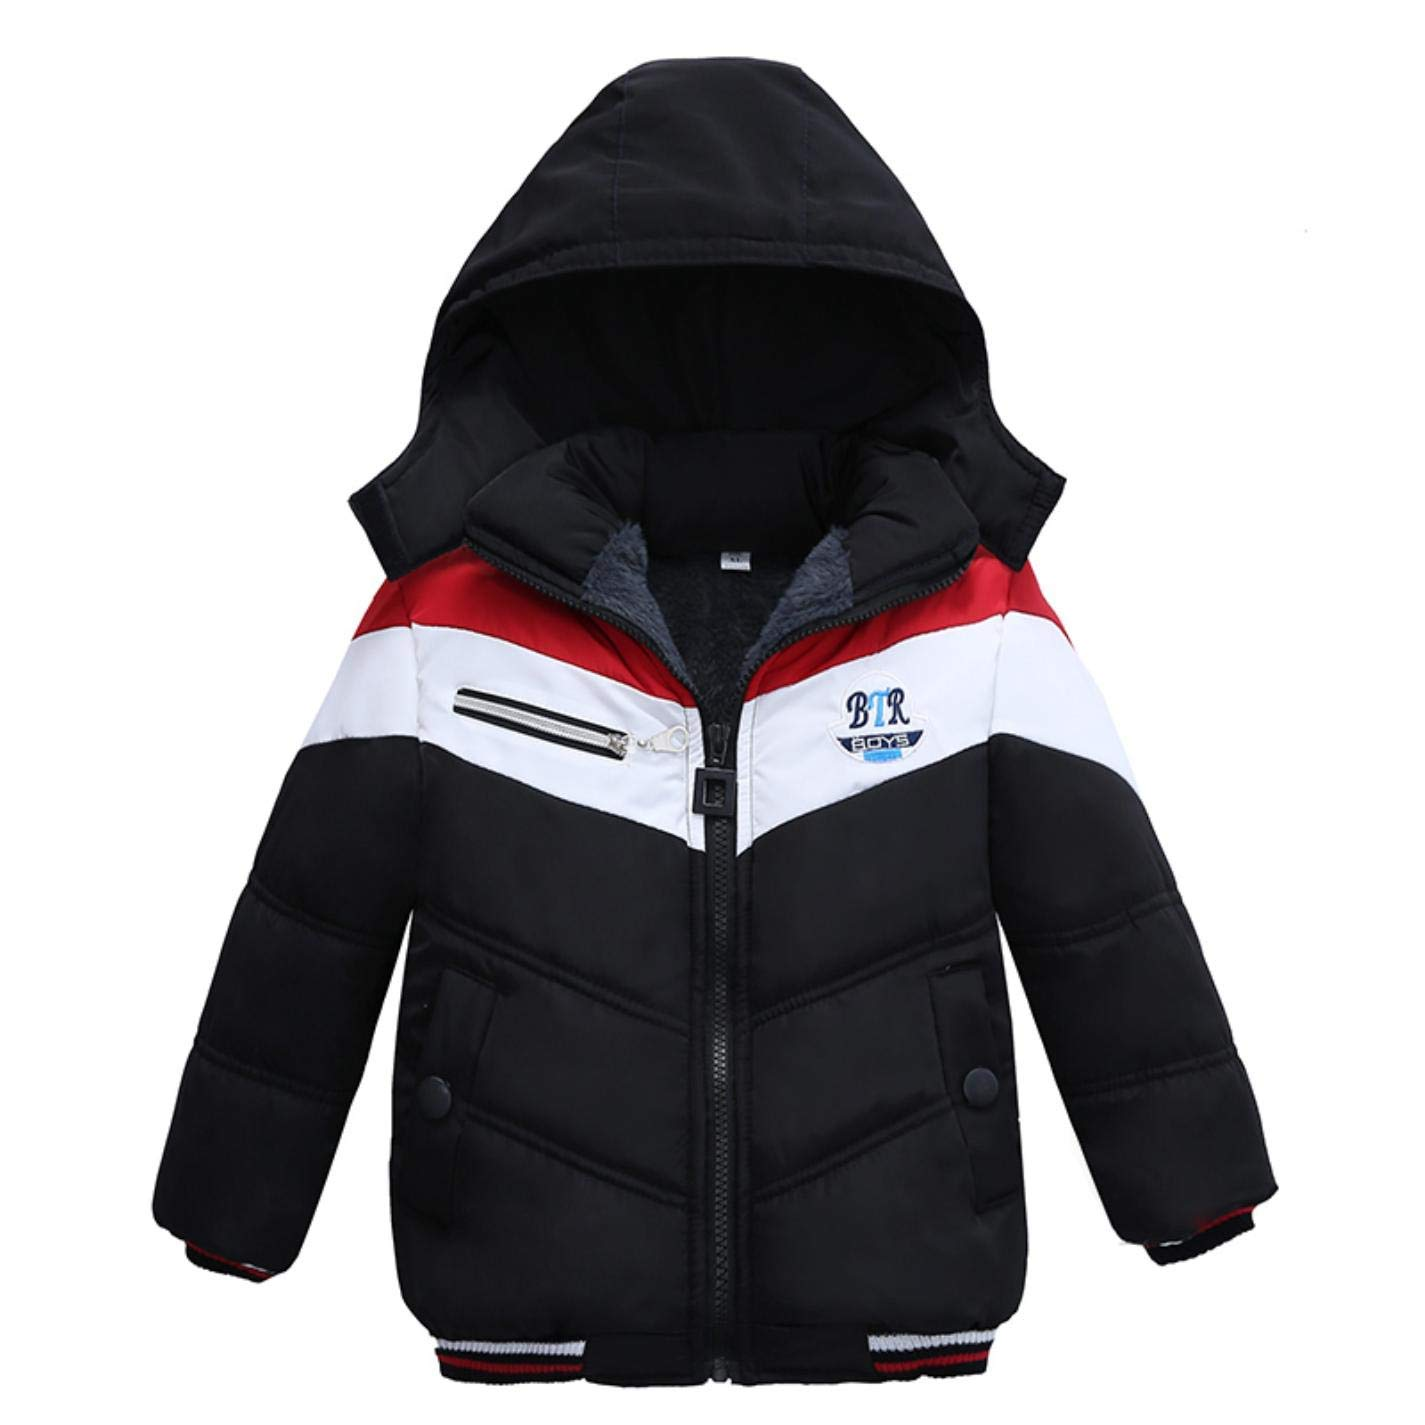 b45b12a9b Get Quotations · LzCxZDKN Baby Boys Jacket Kids Warm Hooded Outerwear Coats  Children Clothes